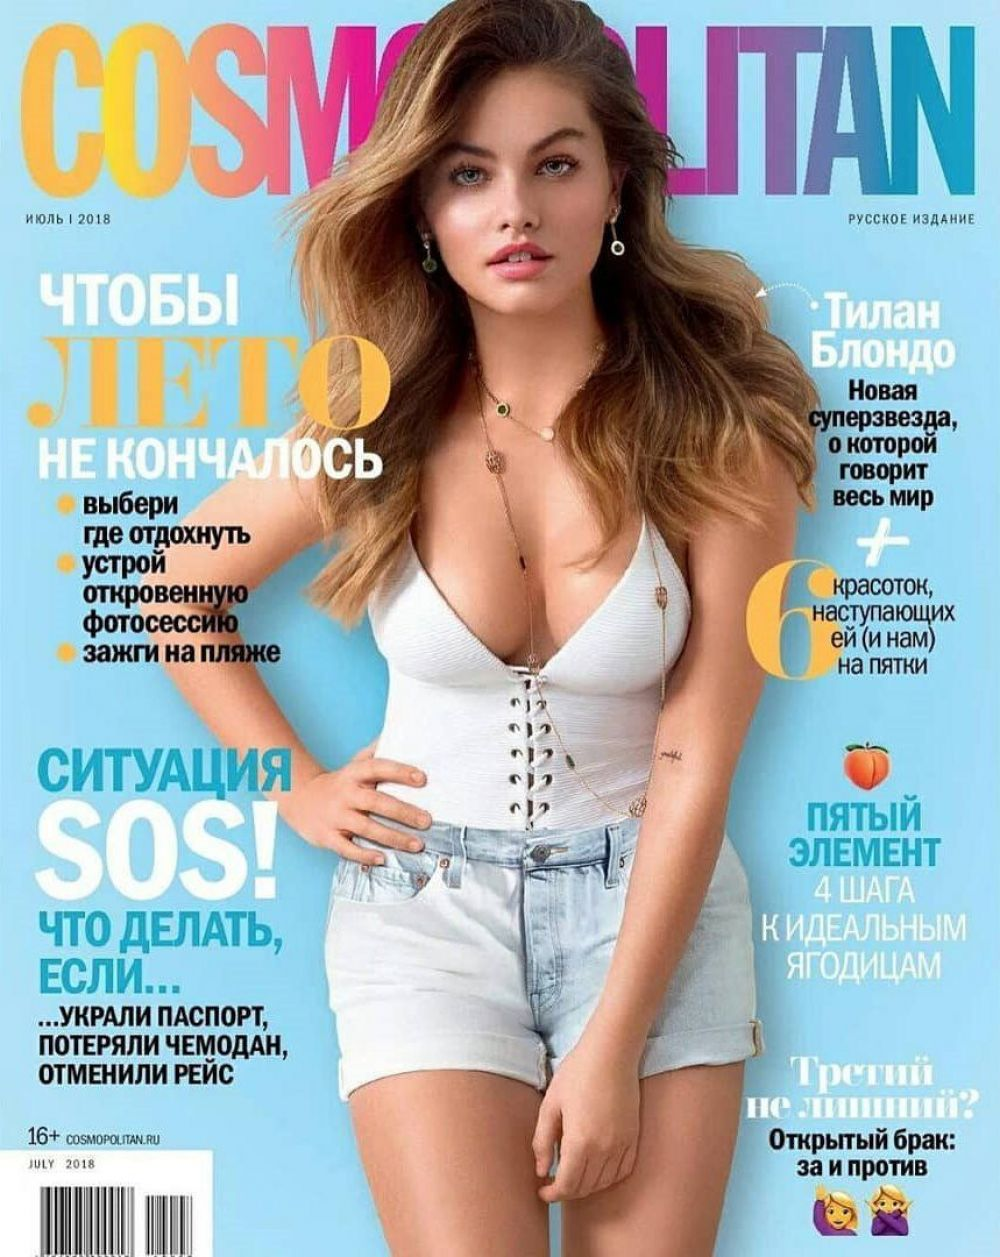 thylane-blondeau-on-the-cover-of-cosmopolitan-magazine-russia-july-2018-0.jpg